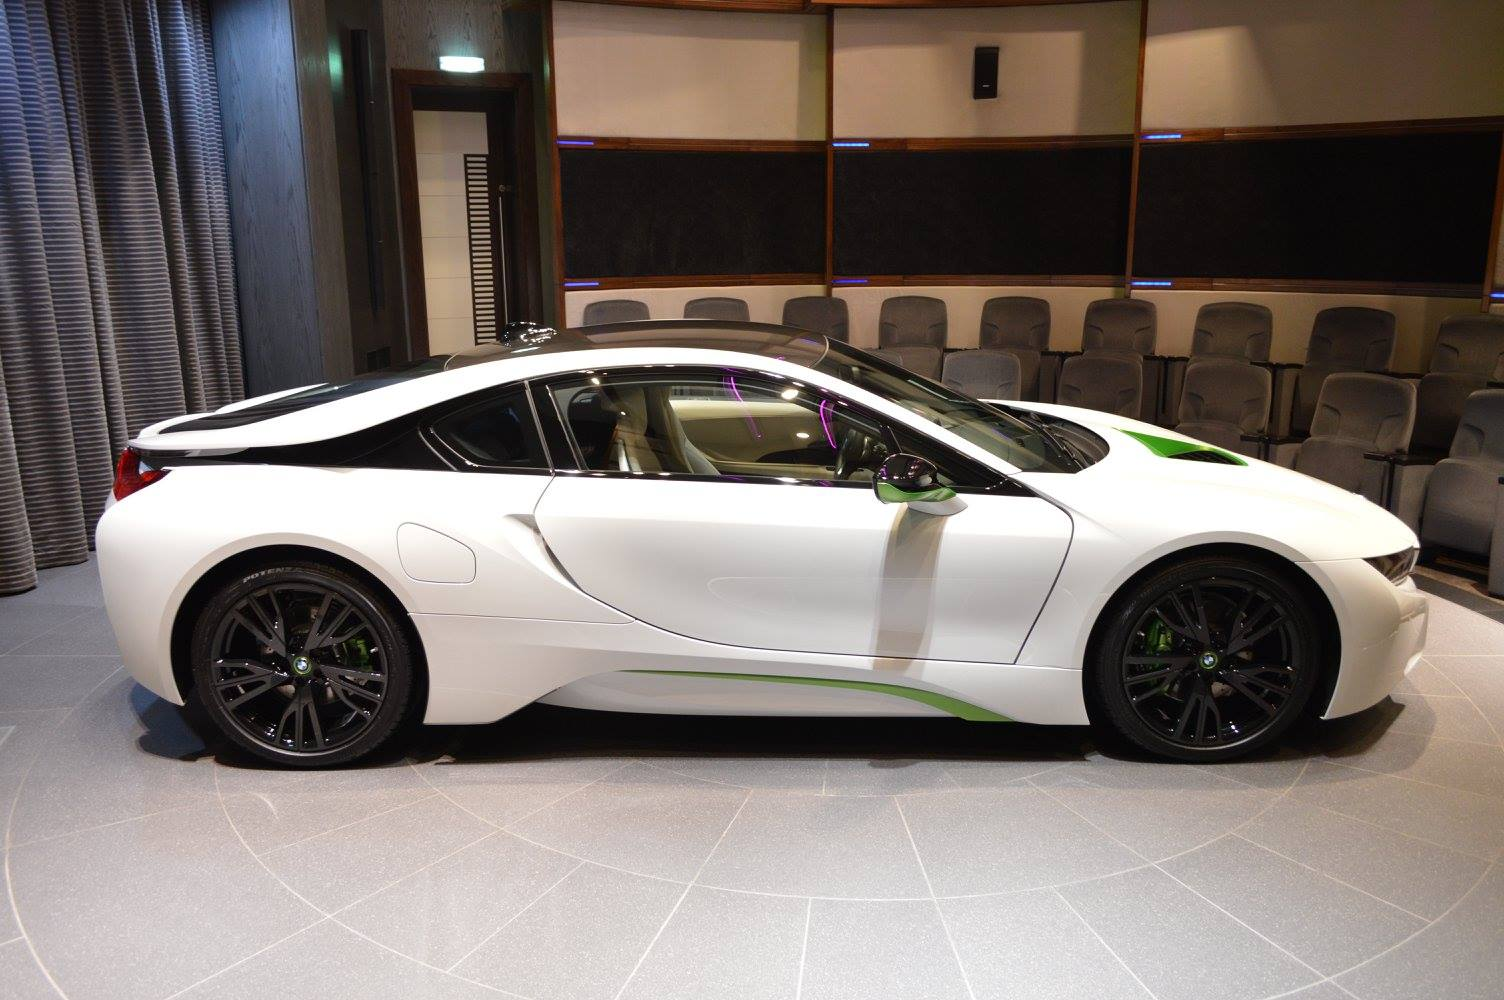 Fabulous White BMW I8 With Java Green Accents